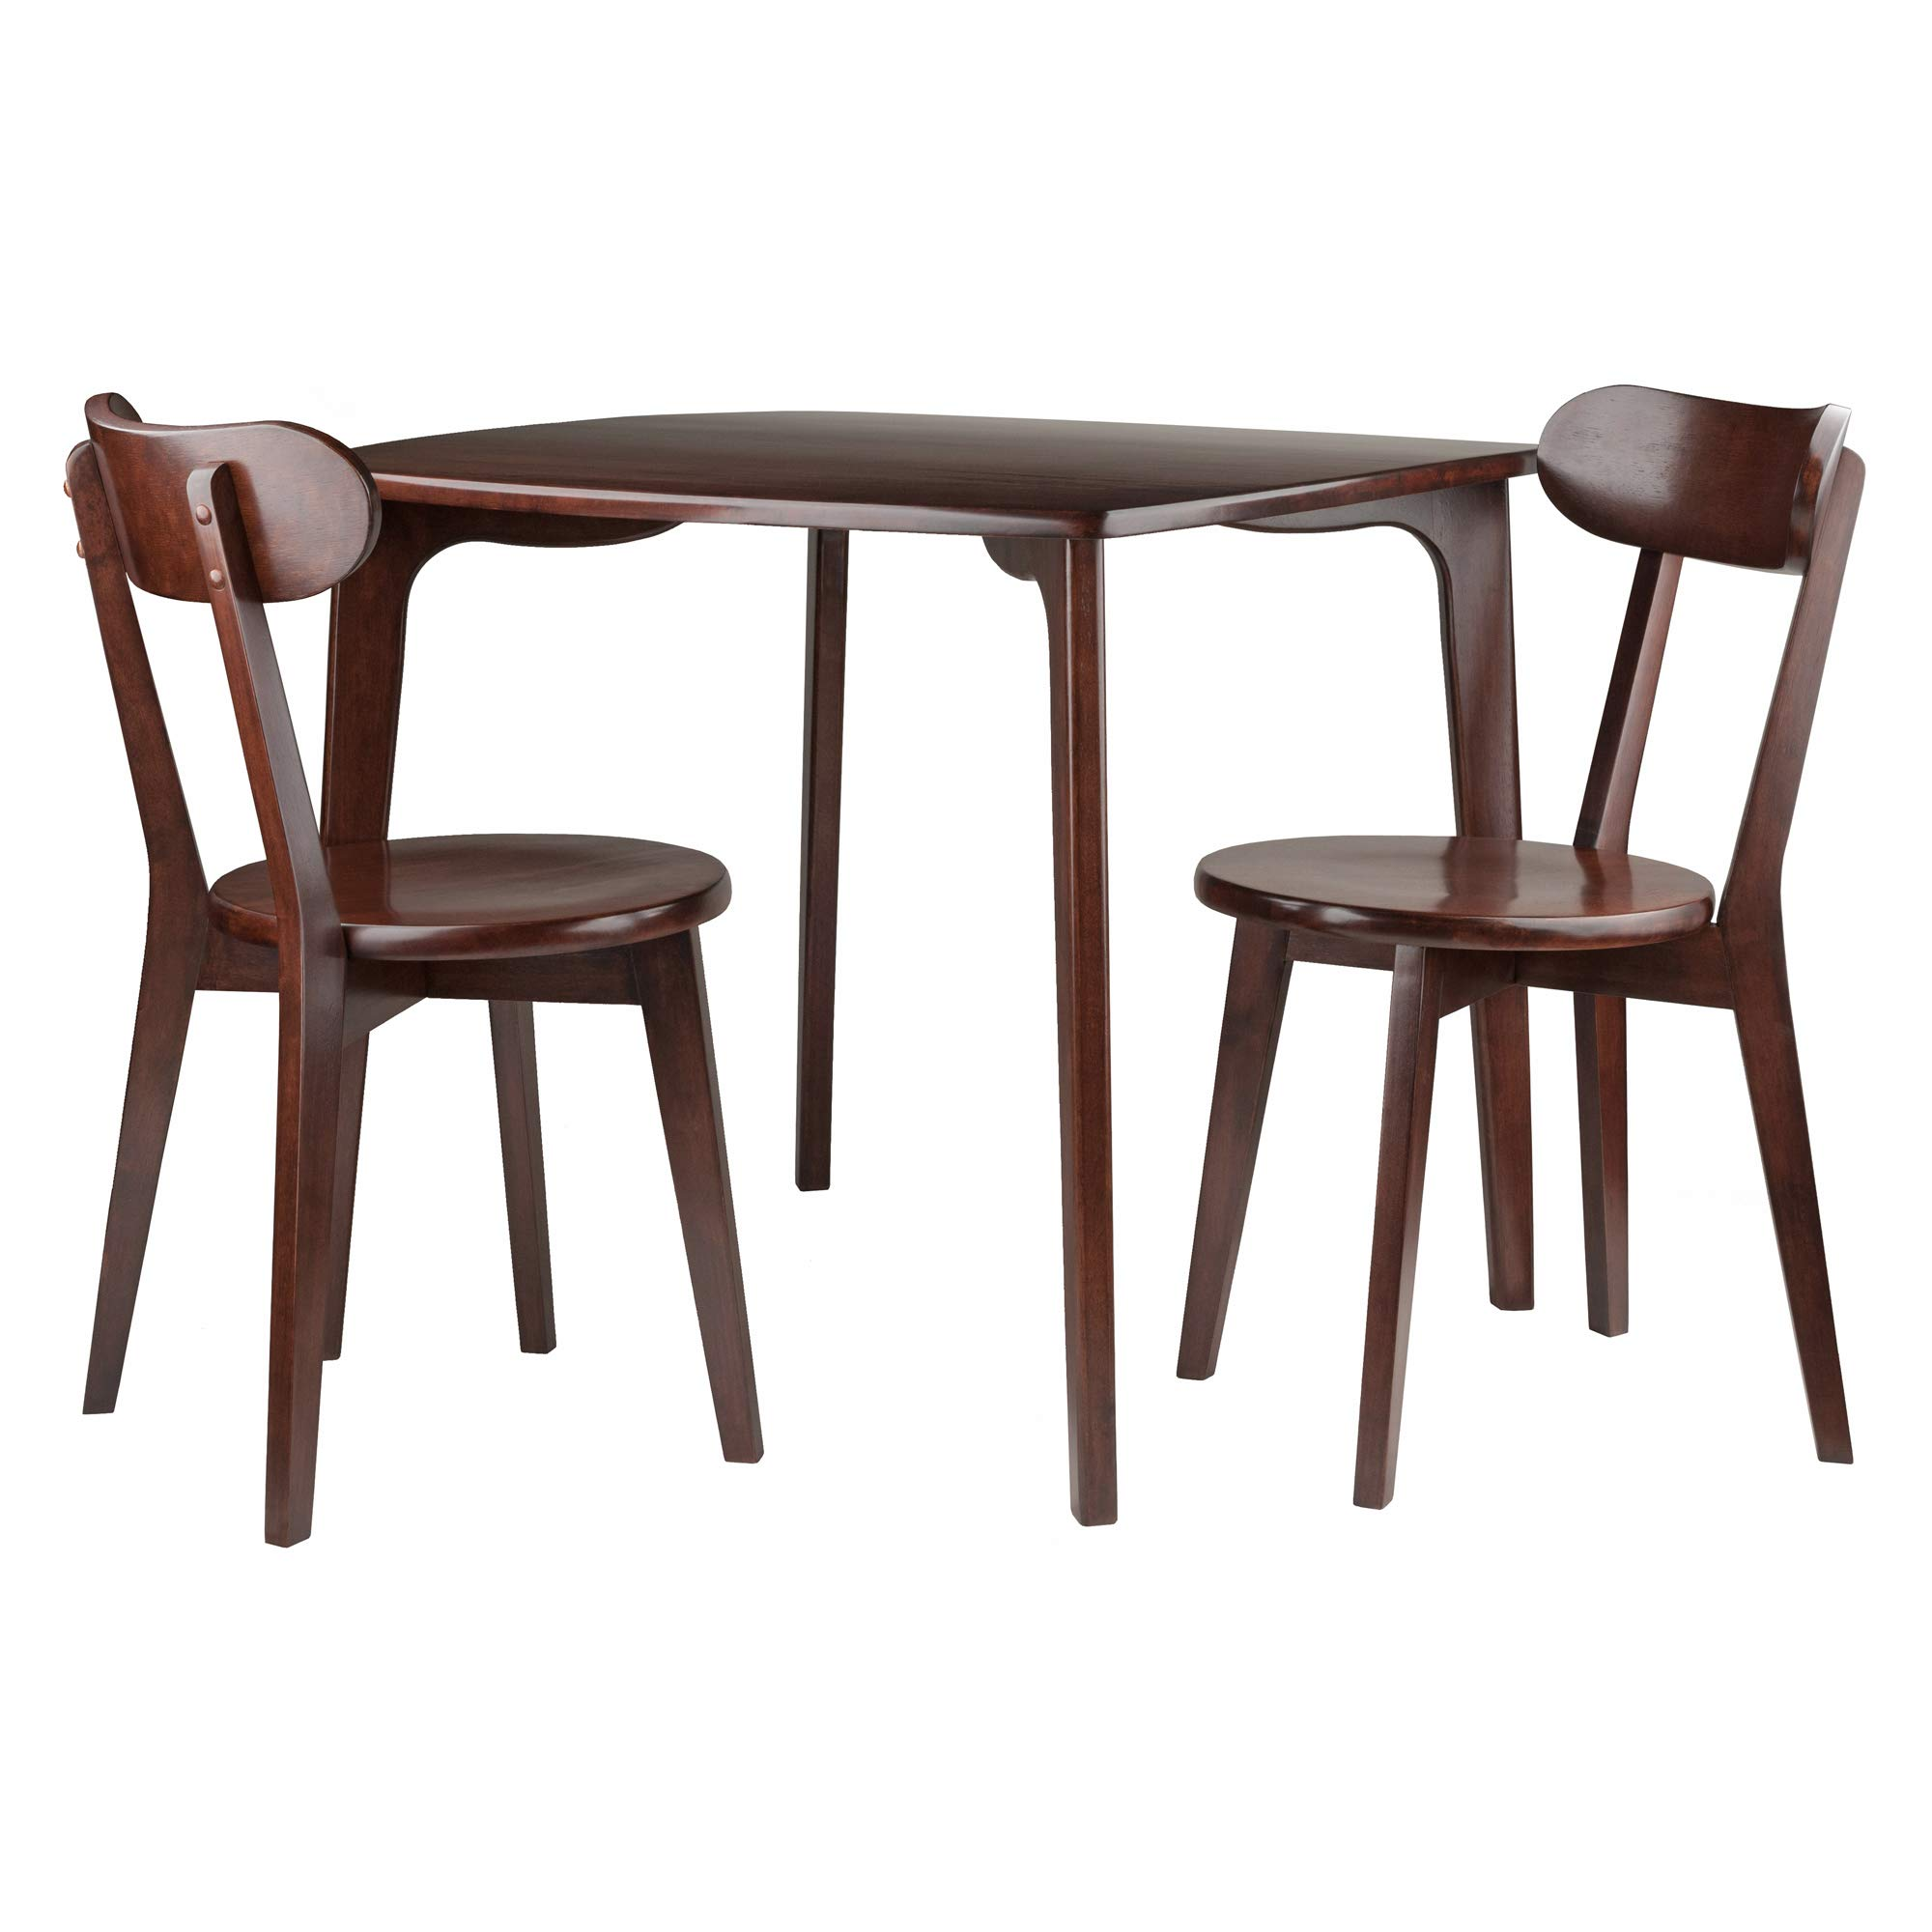 Winsome Wood 94372 Pauline 3-PC Table with 2 Chairs Dining Set, Walnut